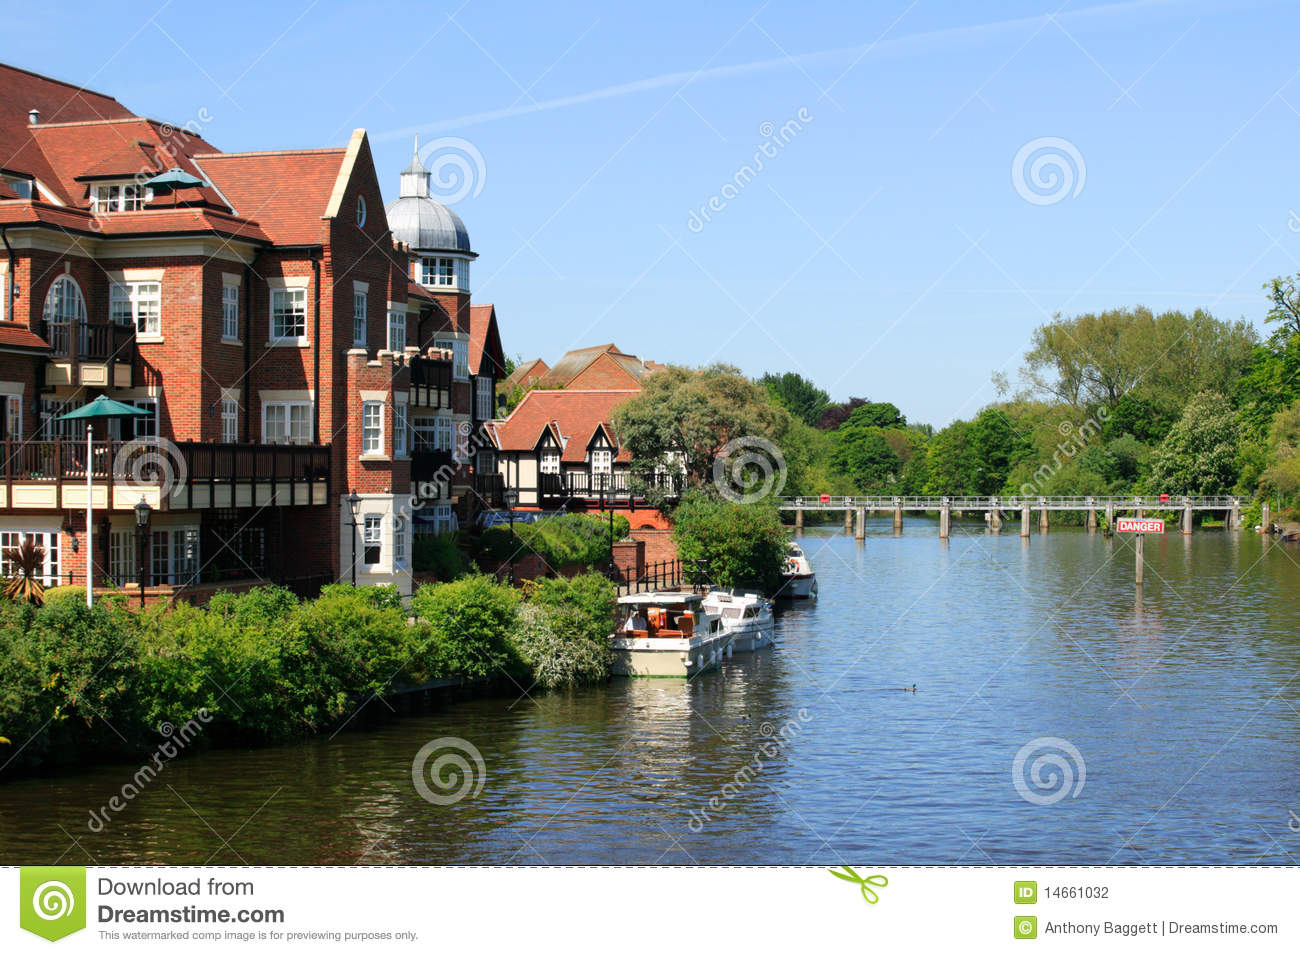 Flodthames windsor